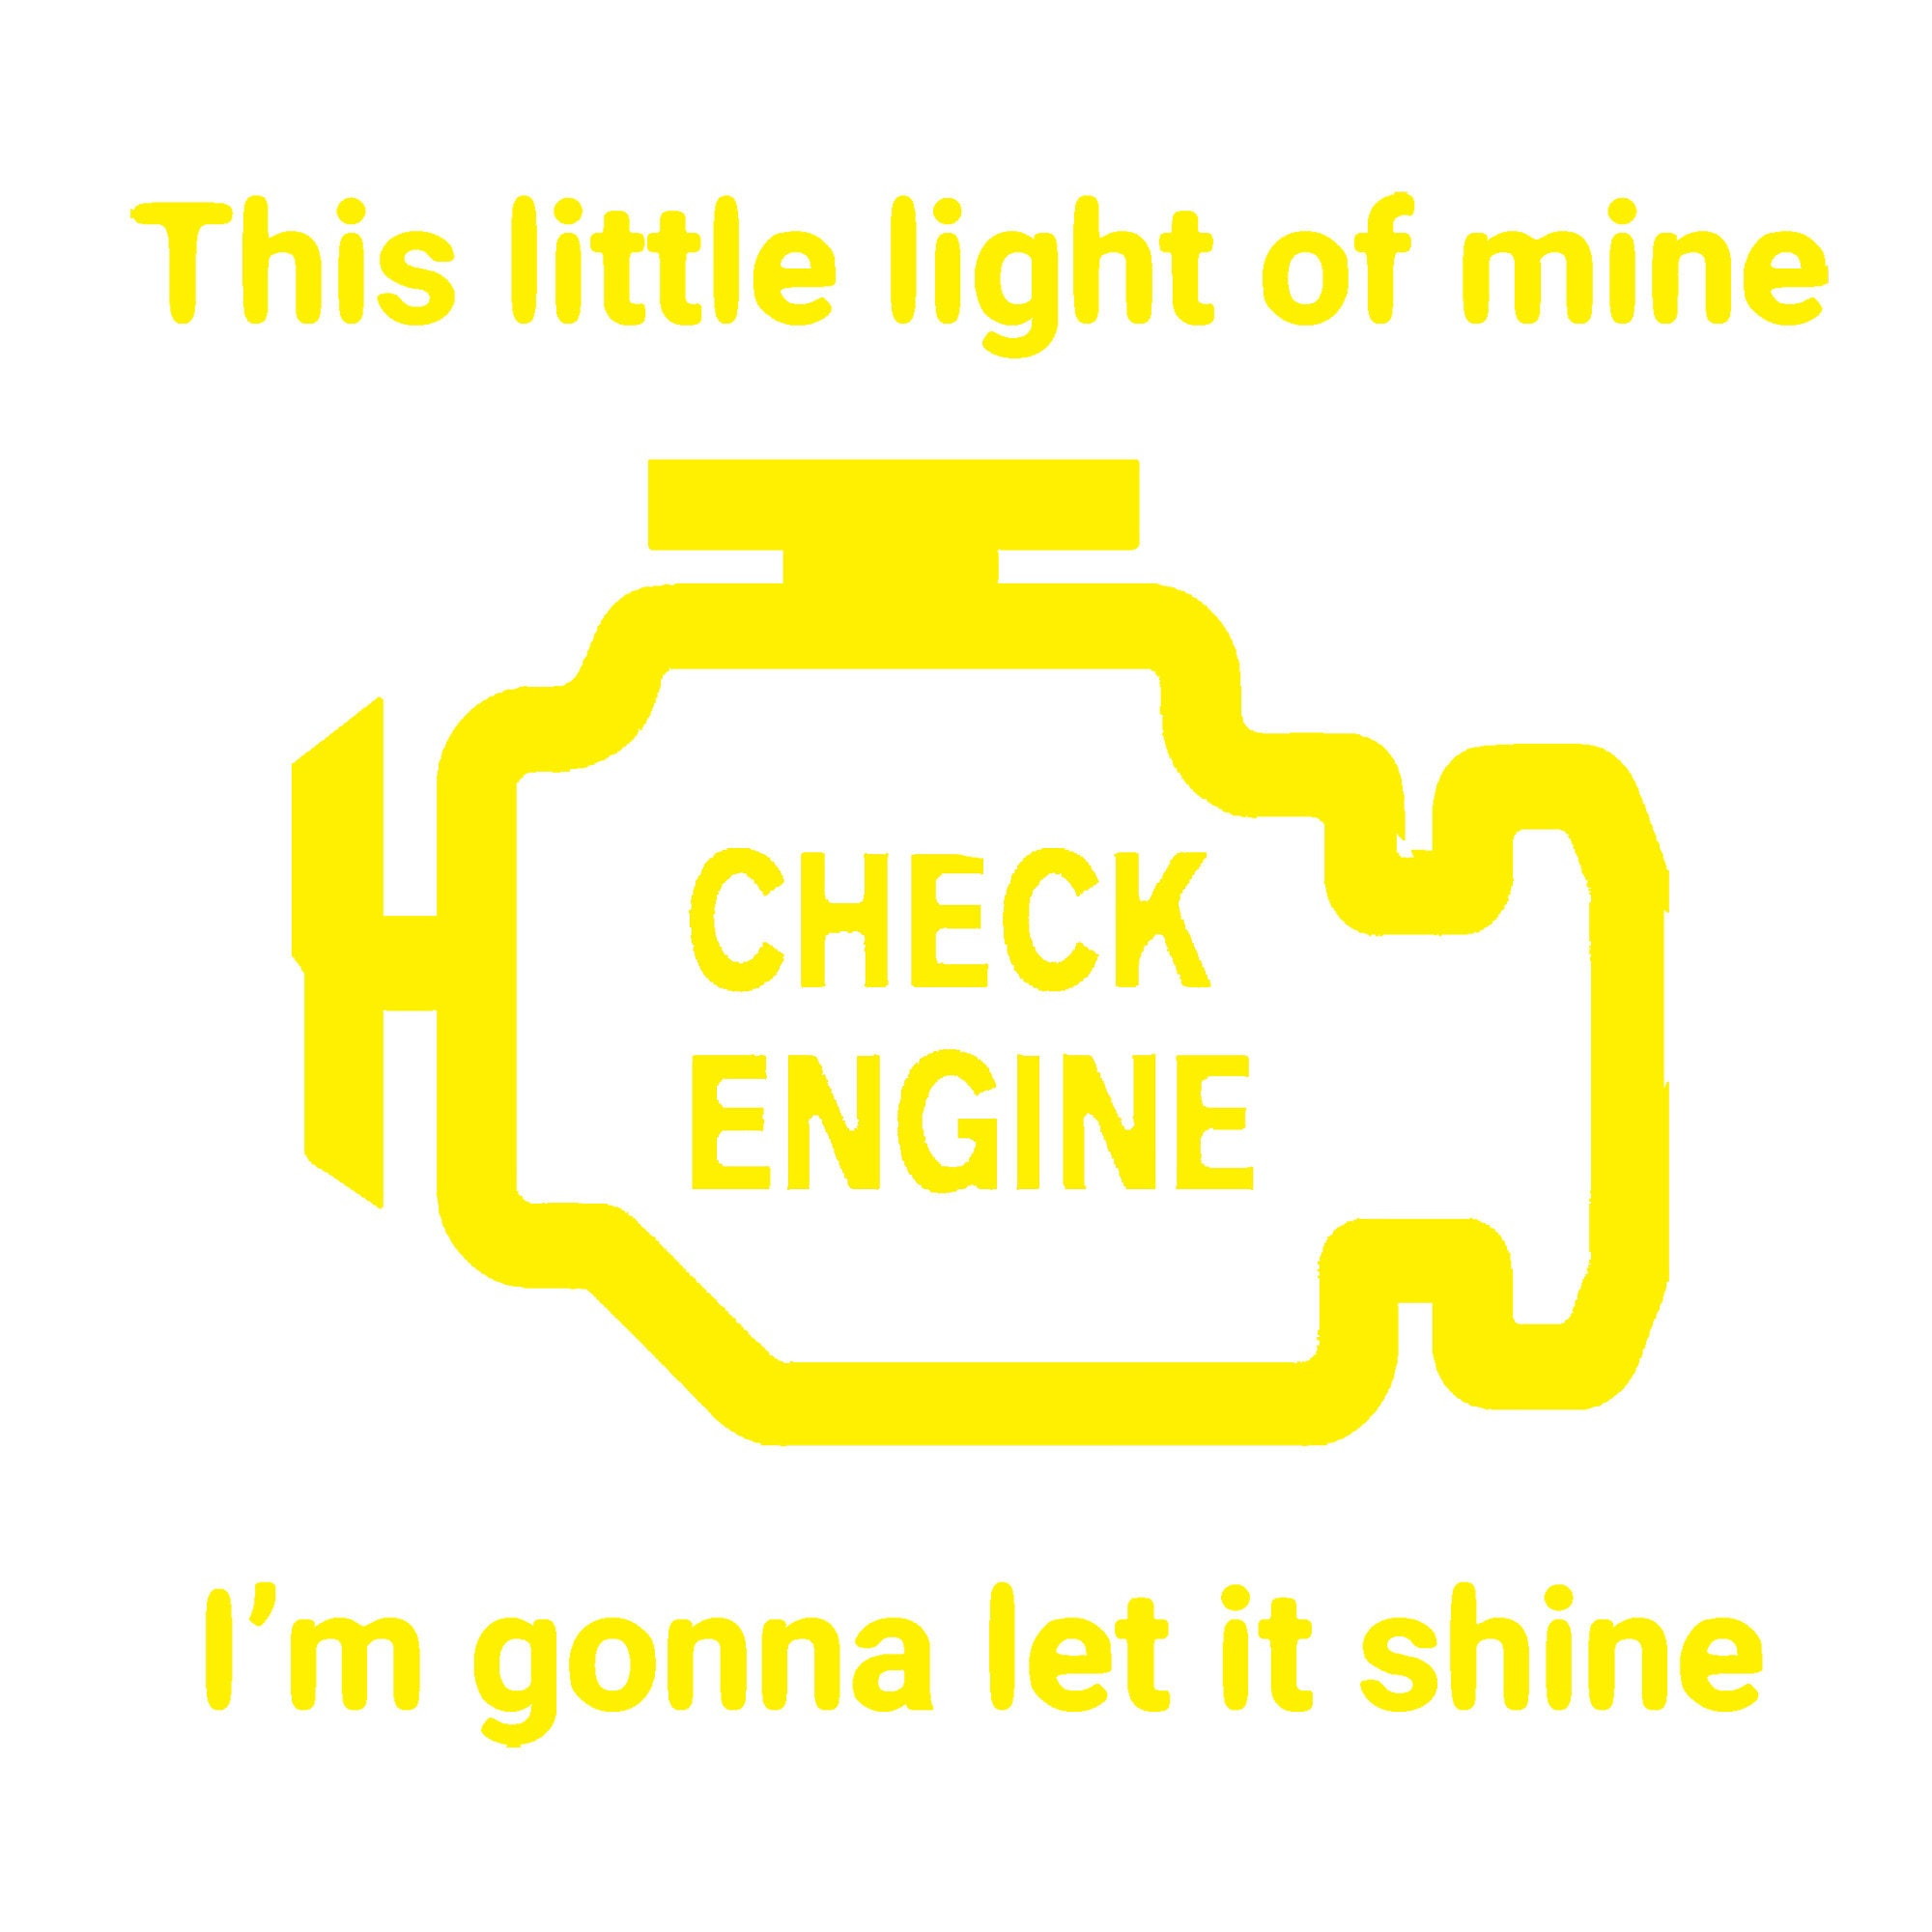 Funny This little light of mine I m gonna let it shine